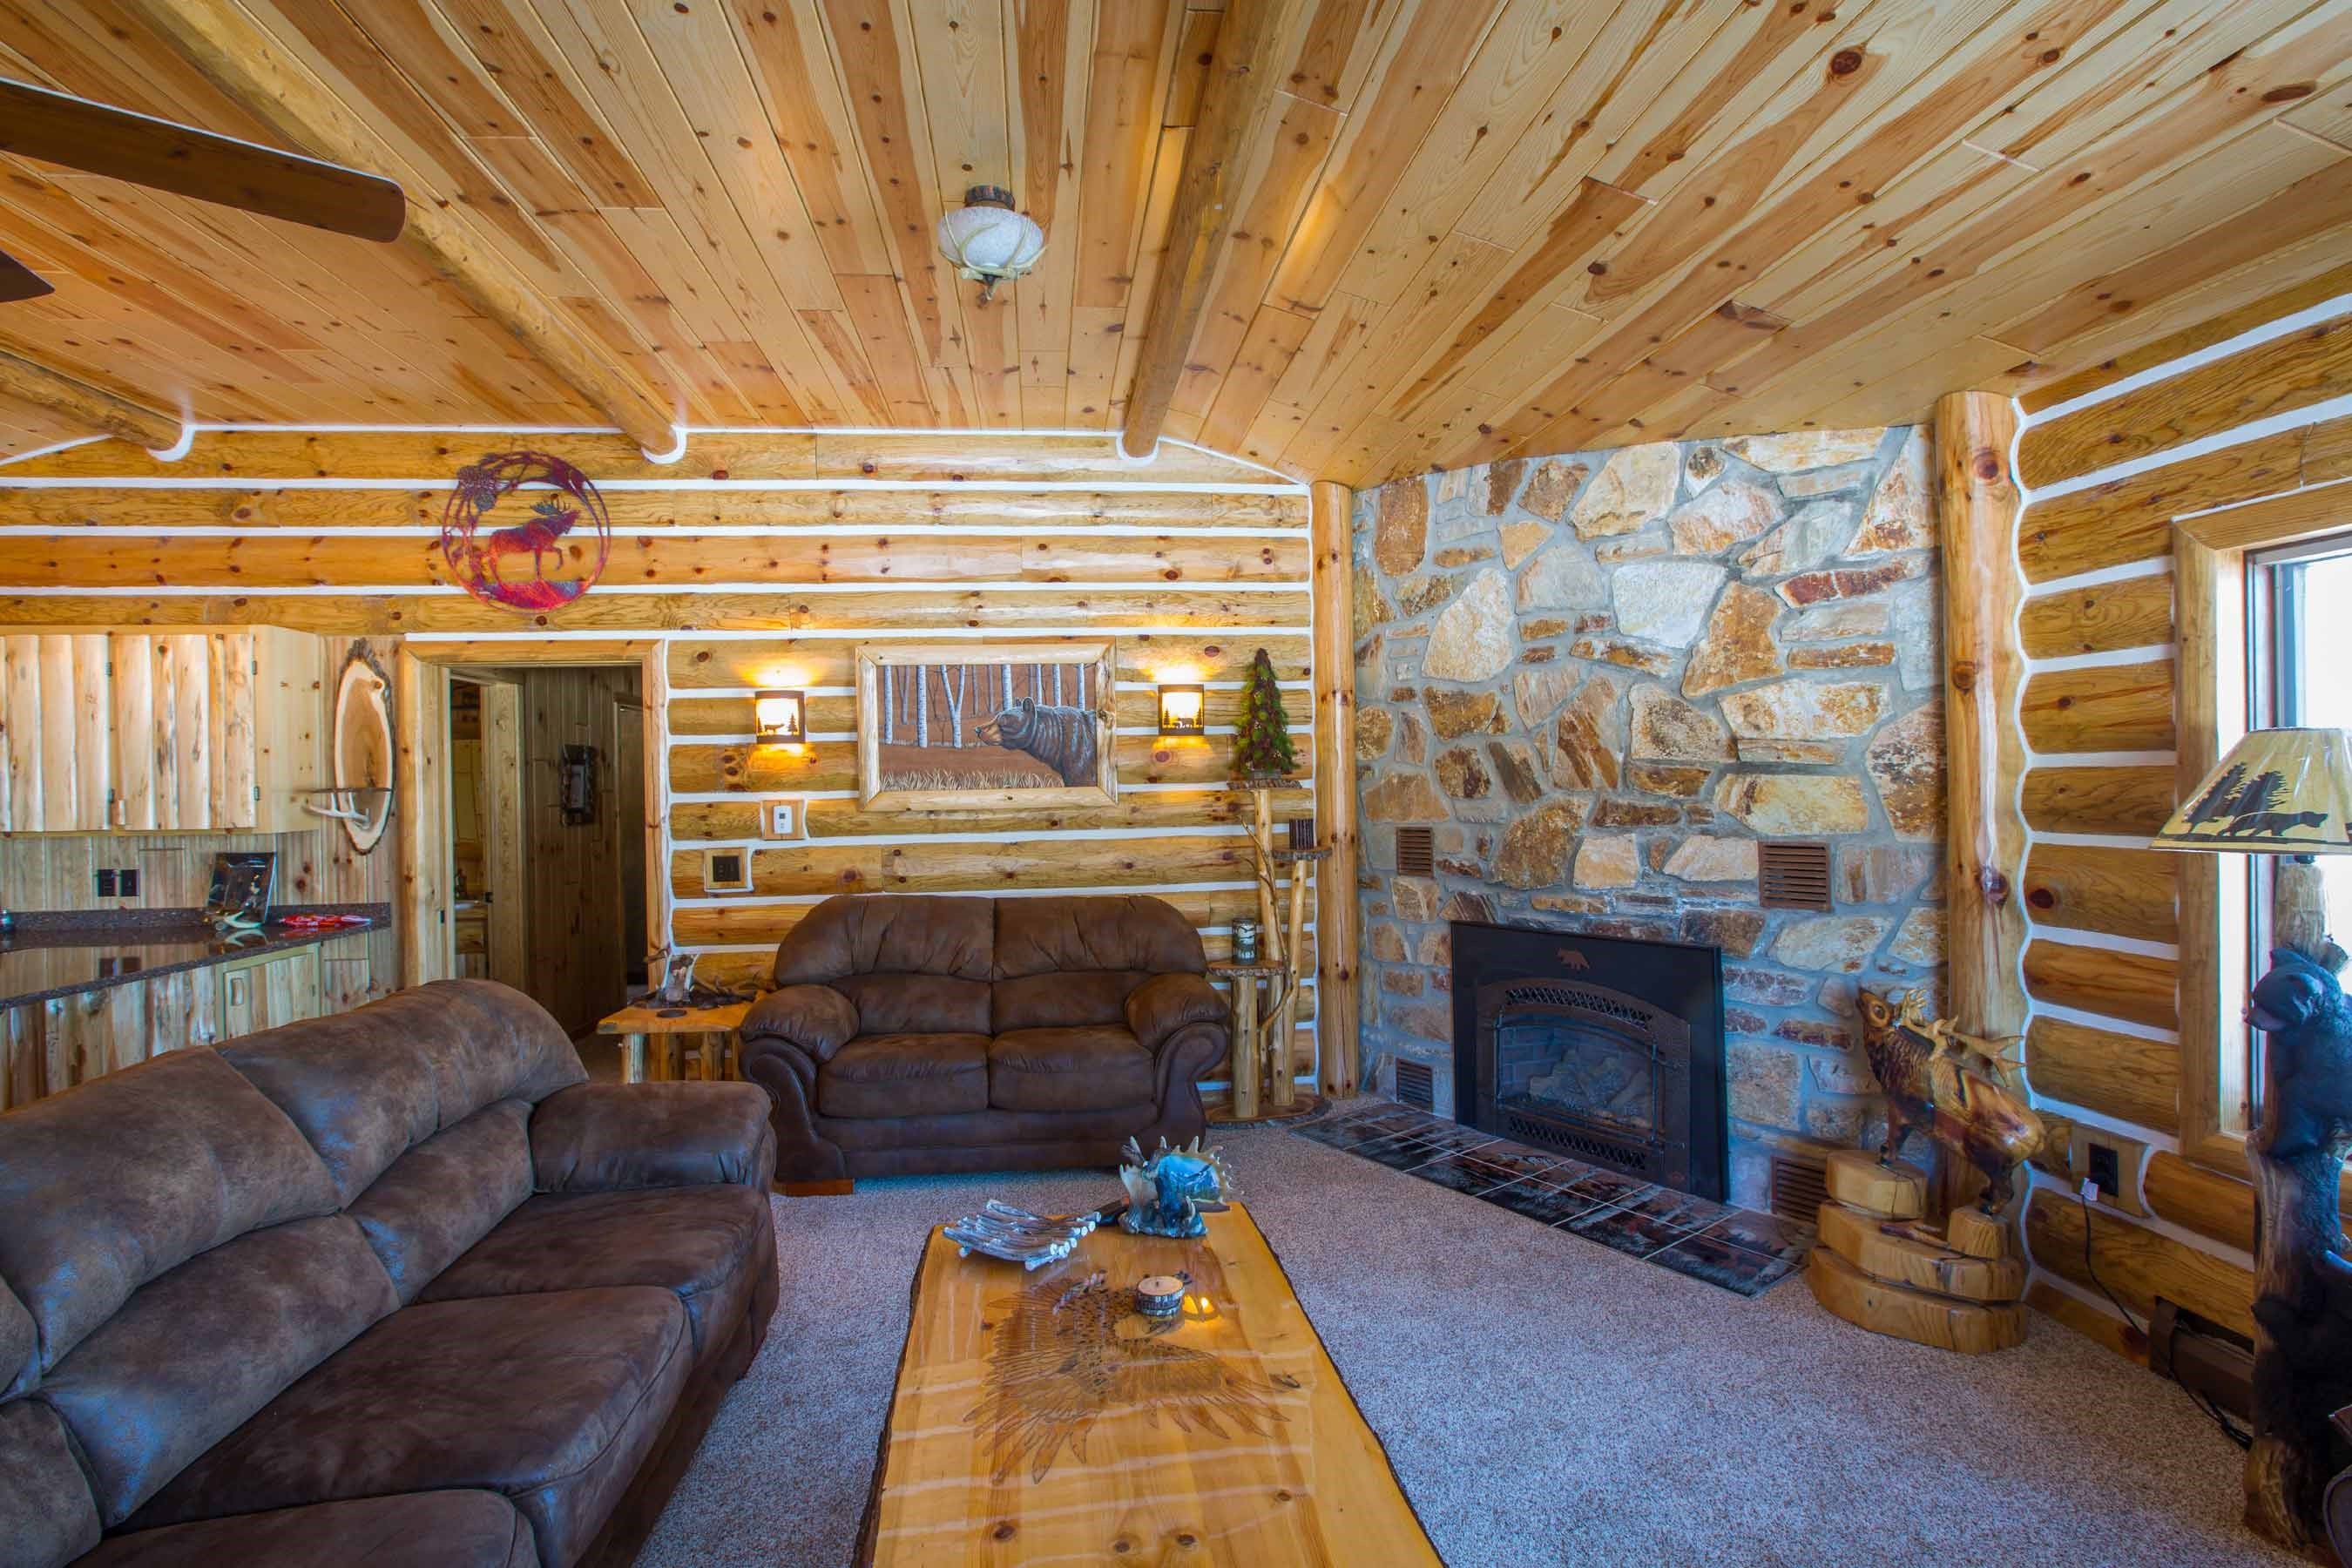 Use Wood Interior Wall Paneling Siding For A Rustic Den Renovation